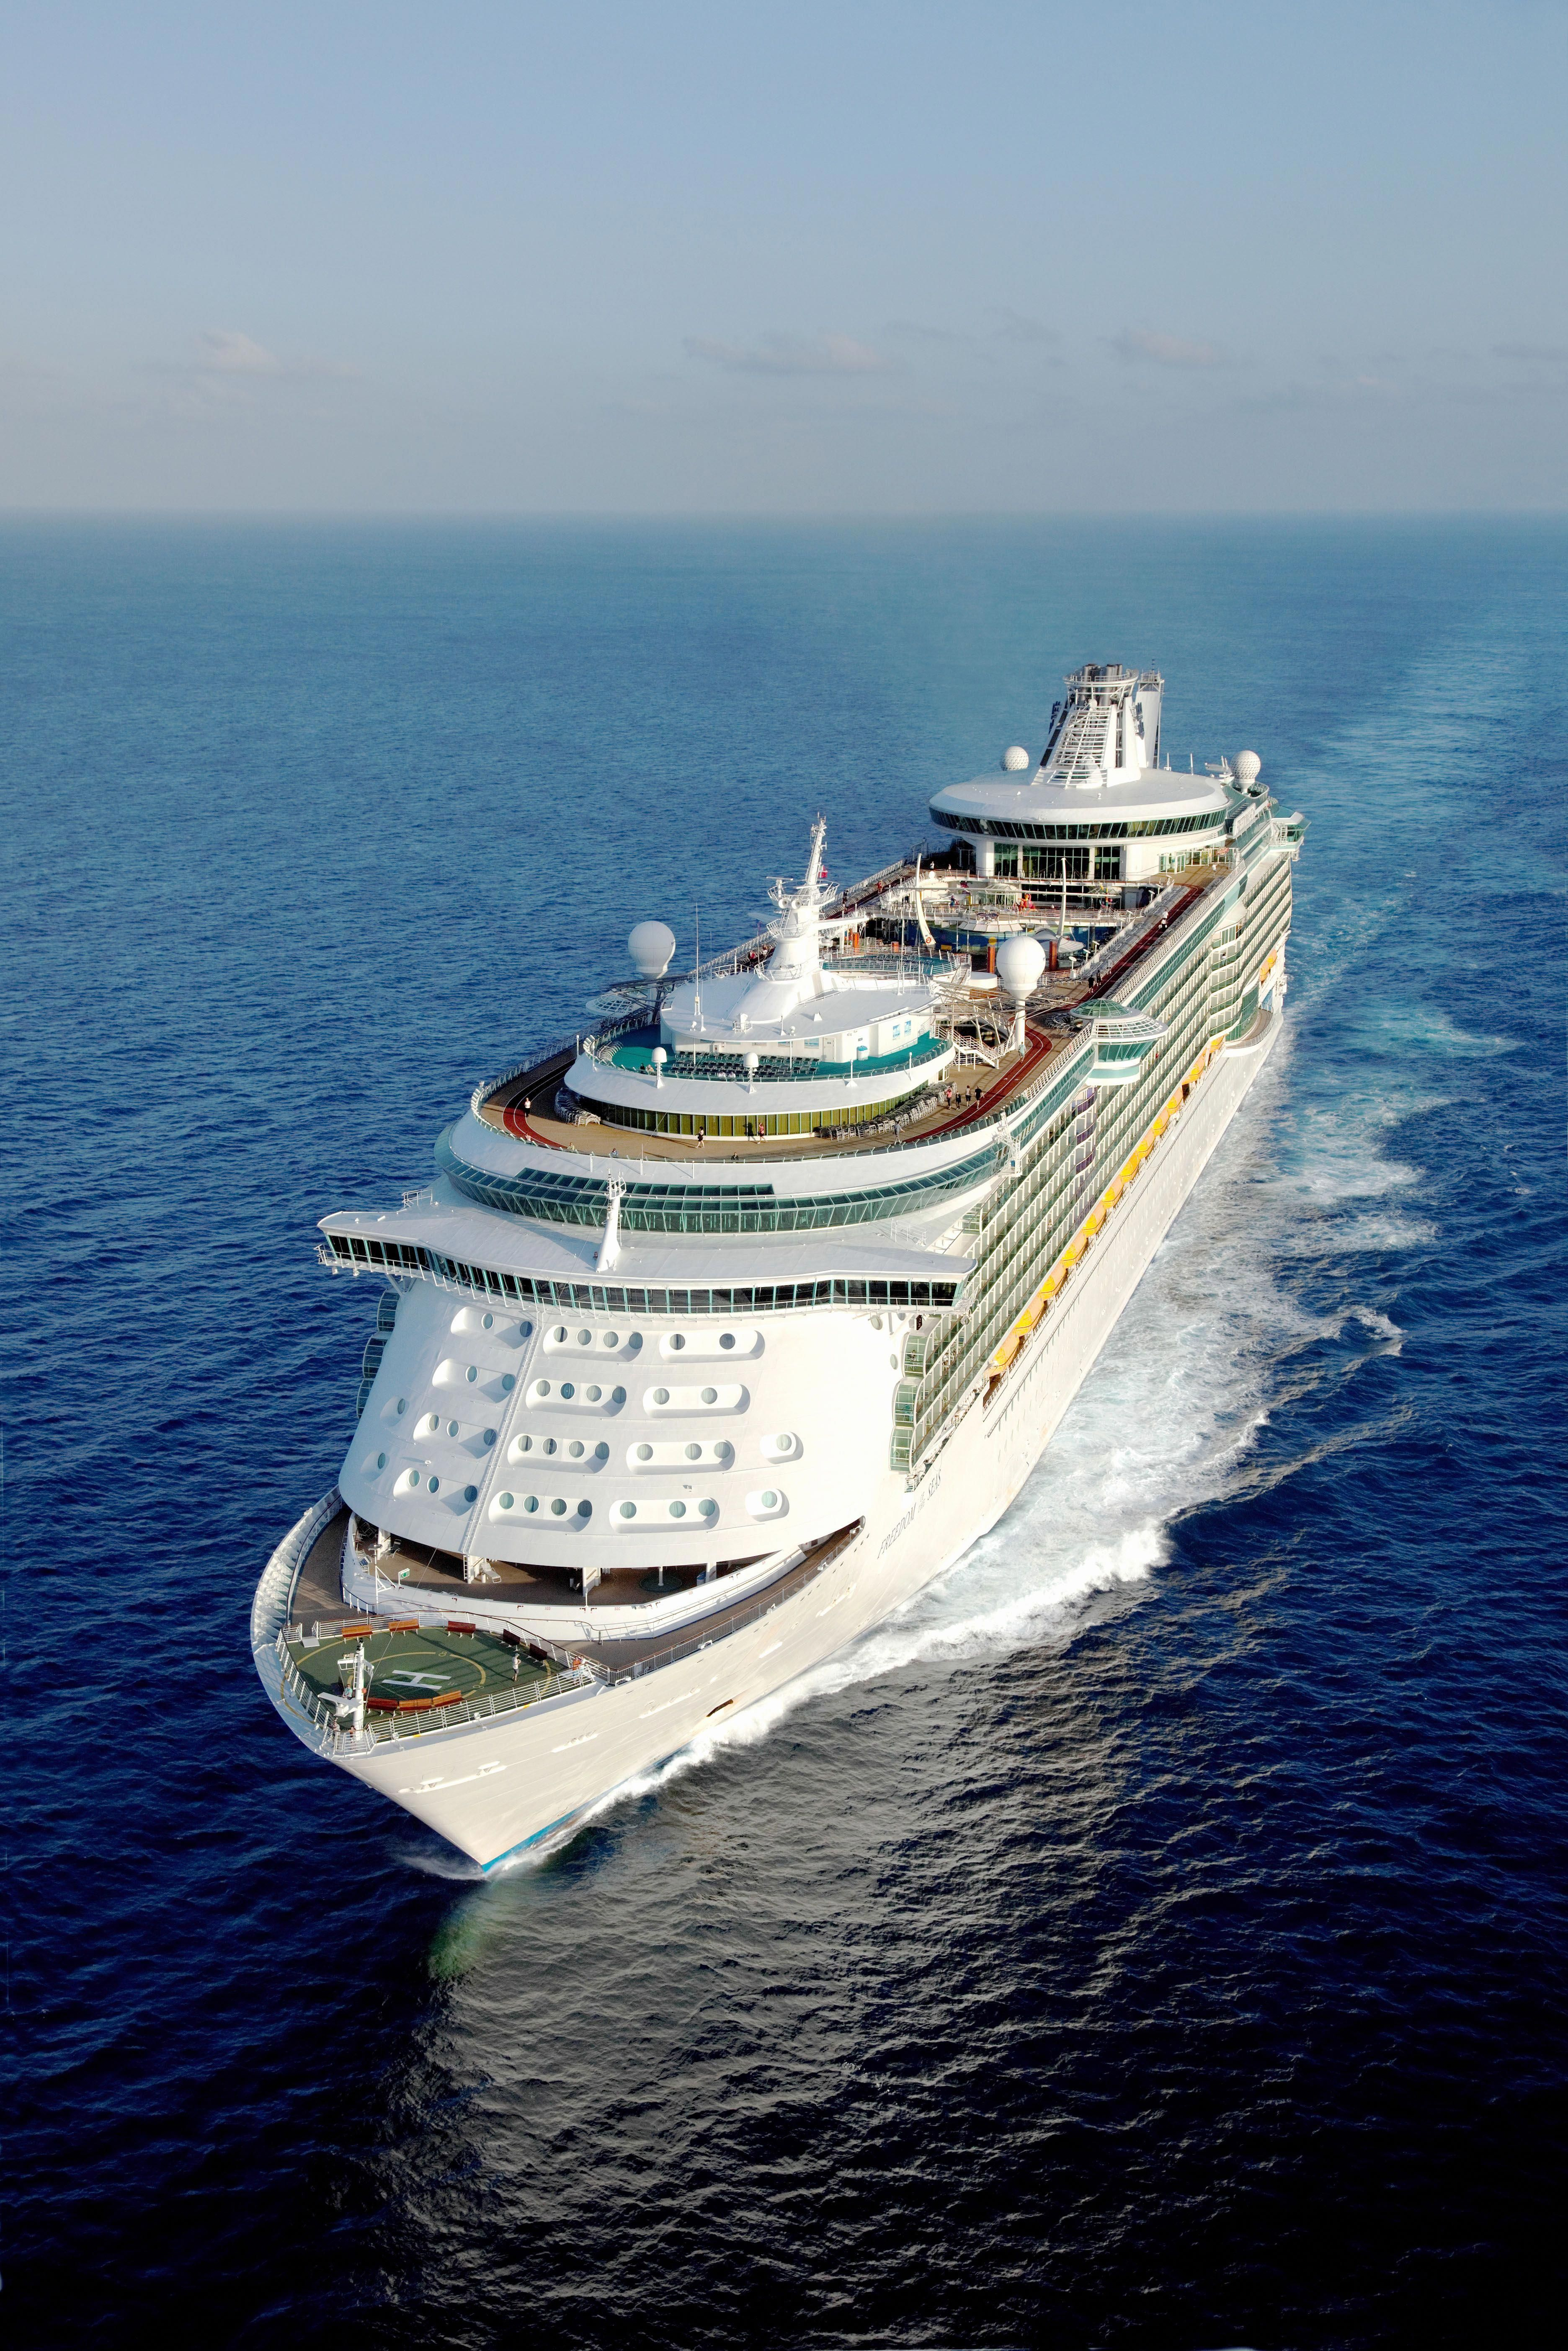 Discover Even More Info On Royal Caribbean Ships Browse Through Our Web Site Freedom Of The Seas Cruise Ship Royal Carribean Cruise